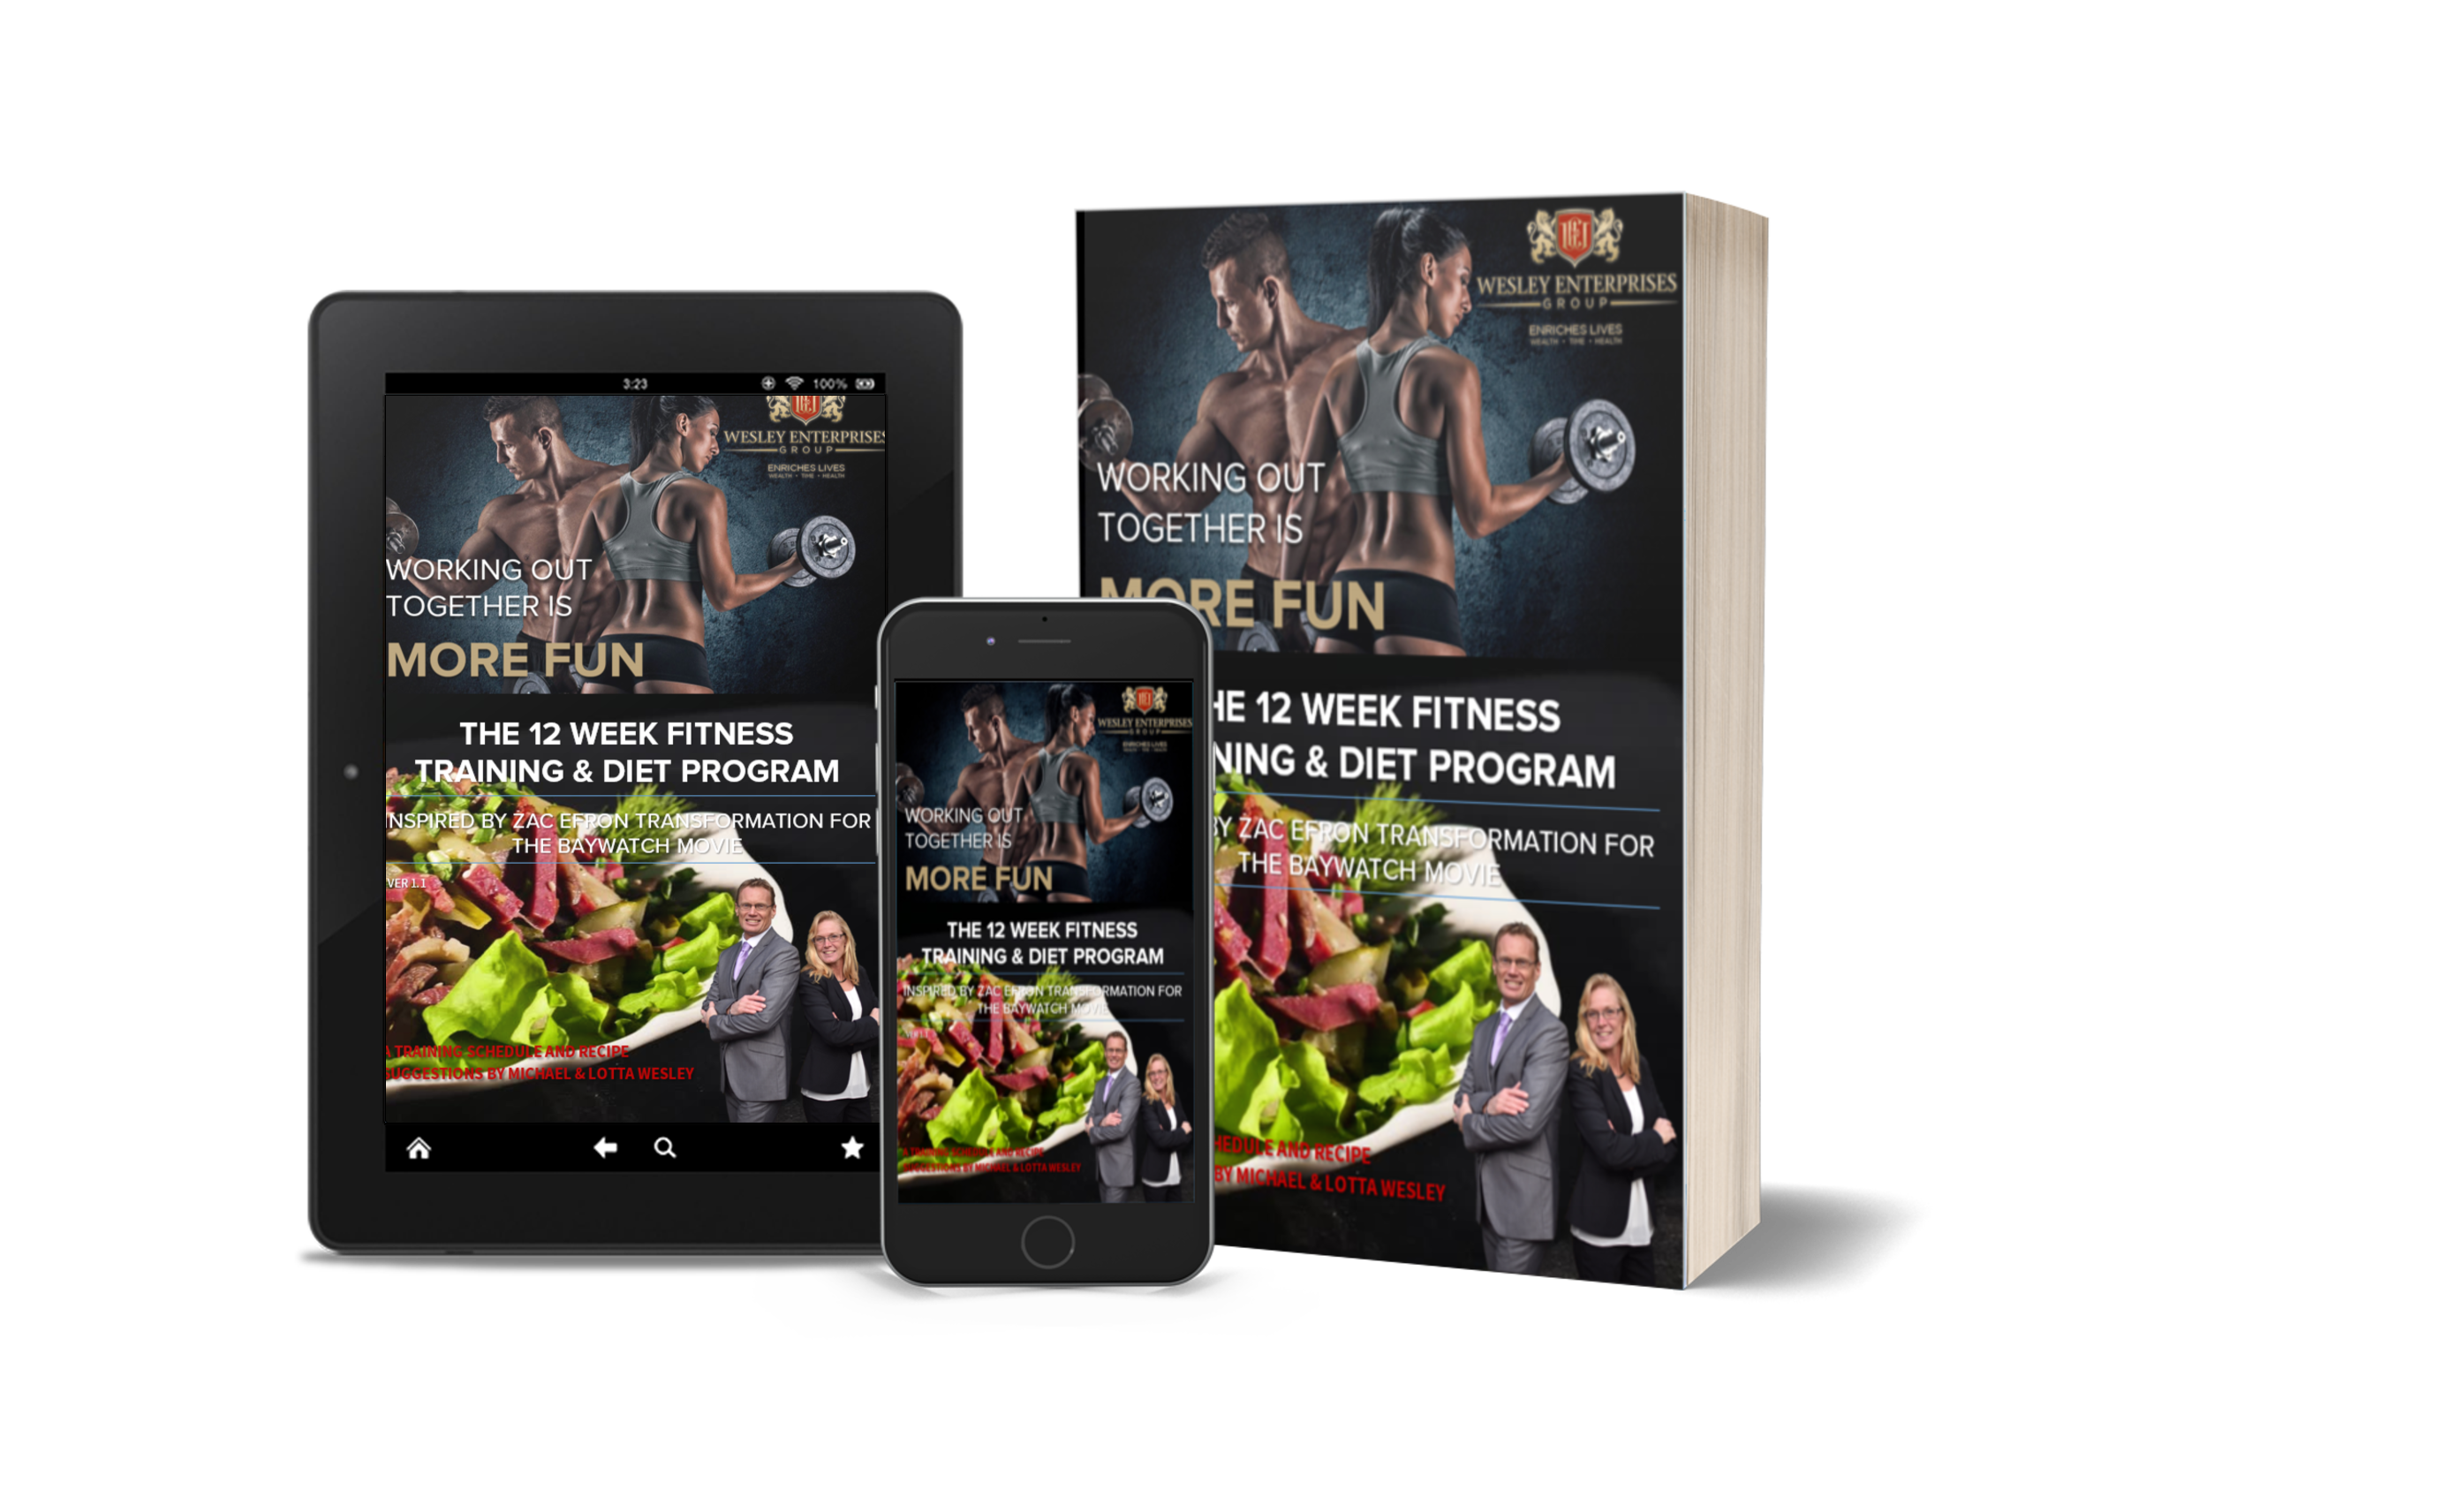 Get the FREE e-book: The 12 weeks fitness training & diet program by Wesley Enterprises